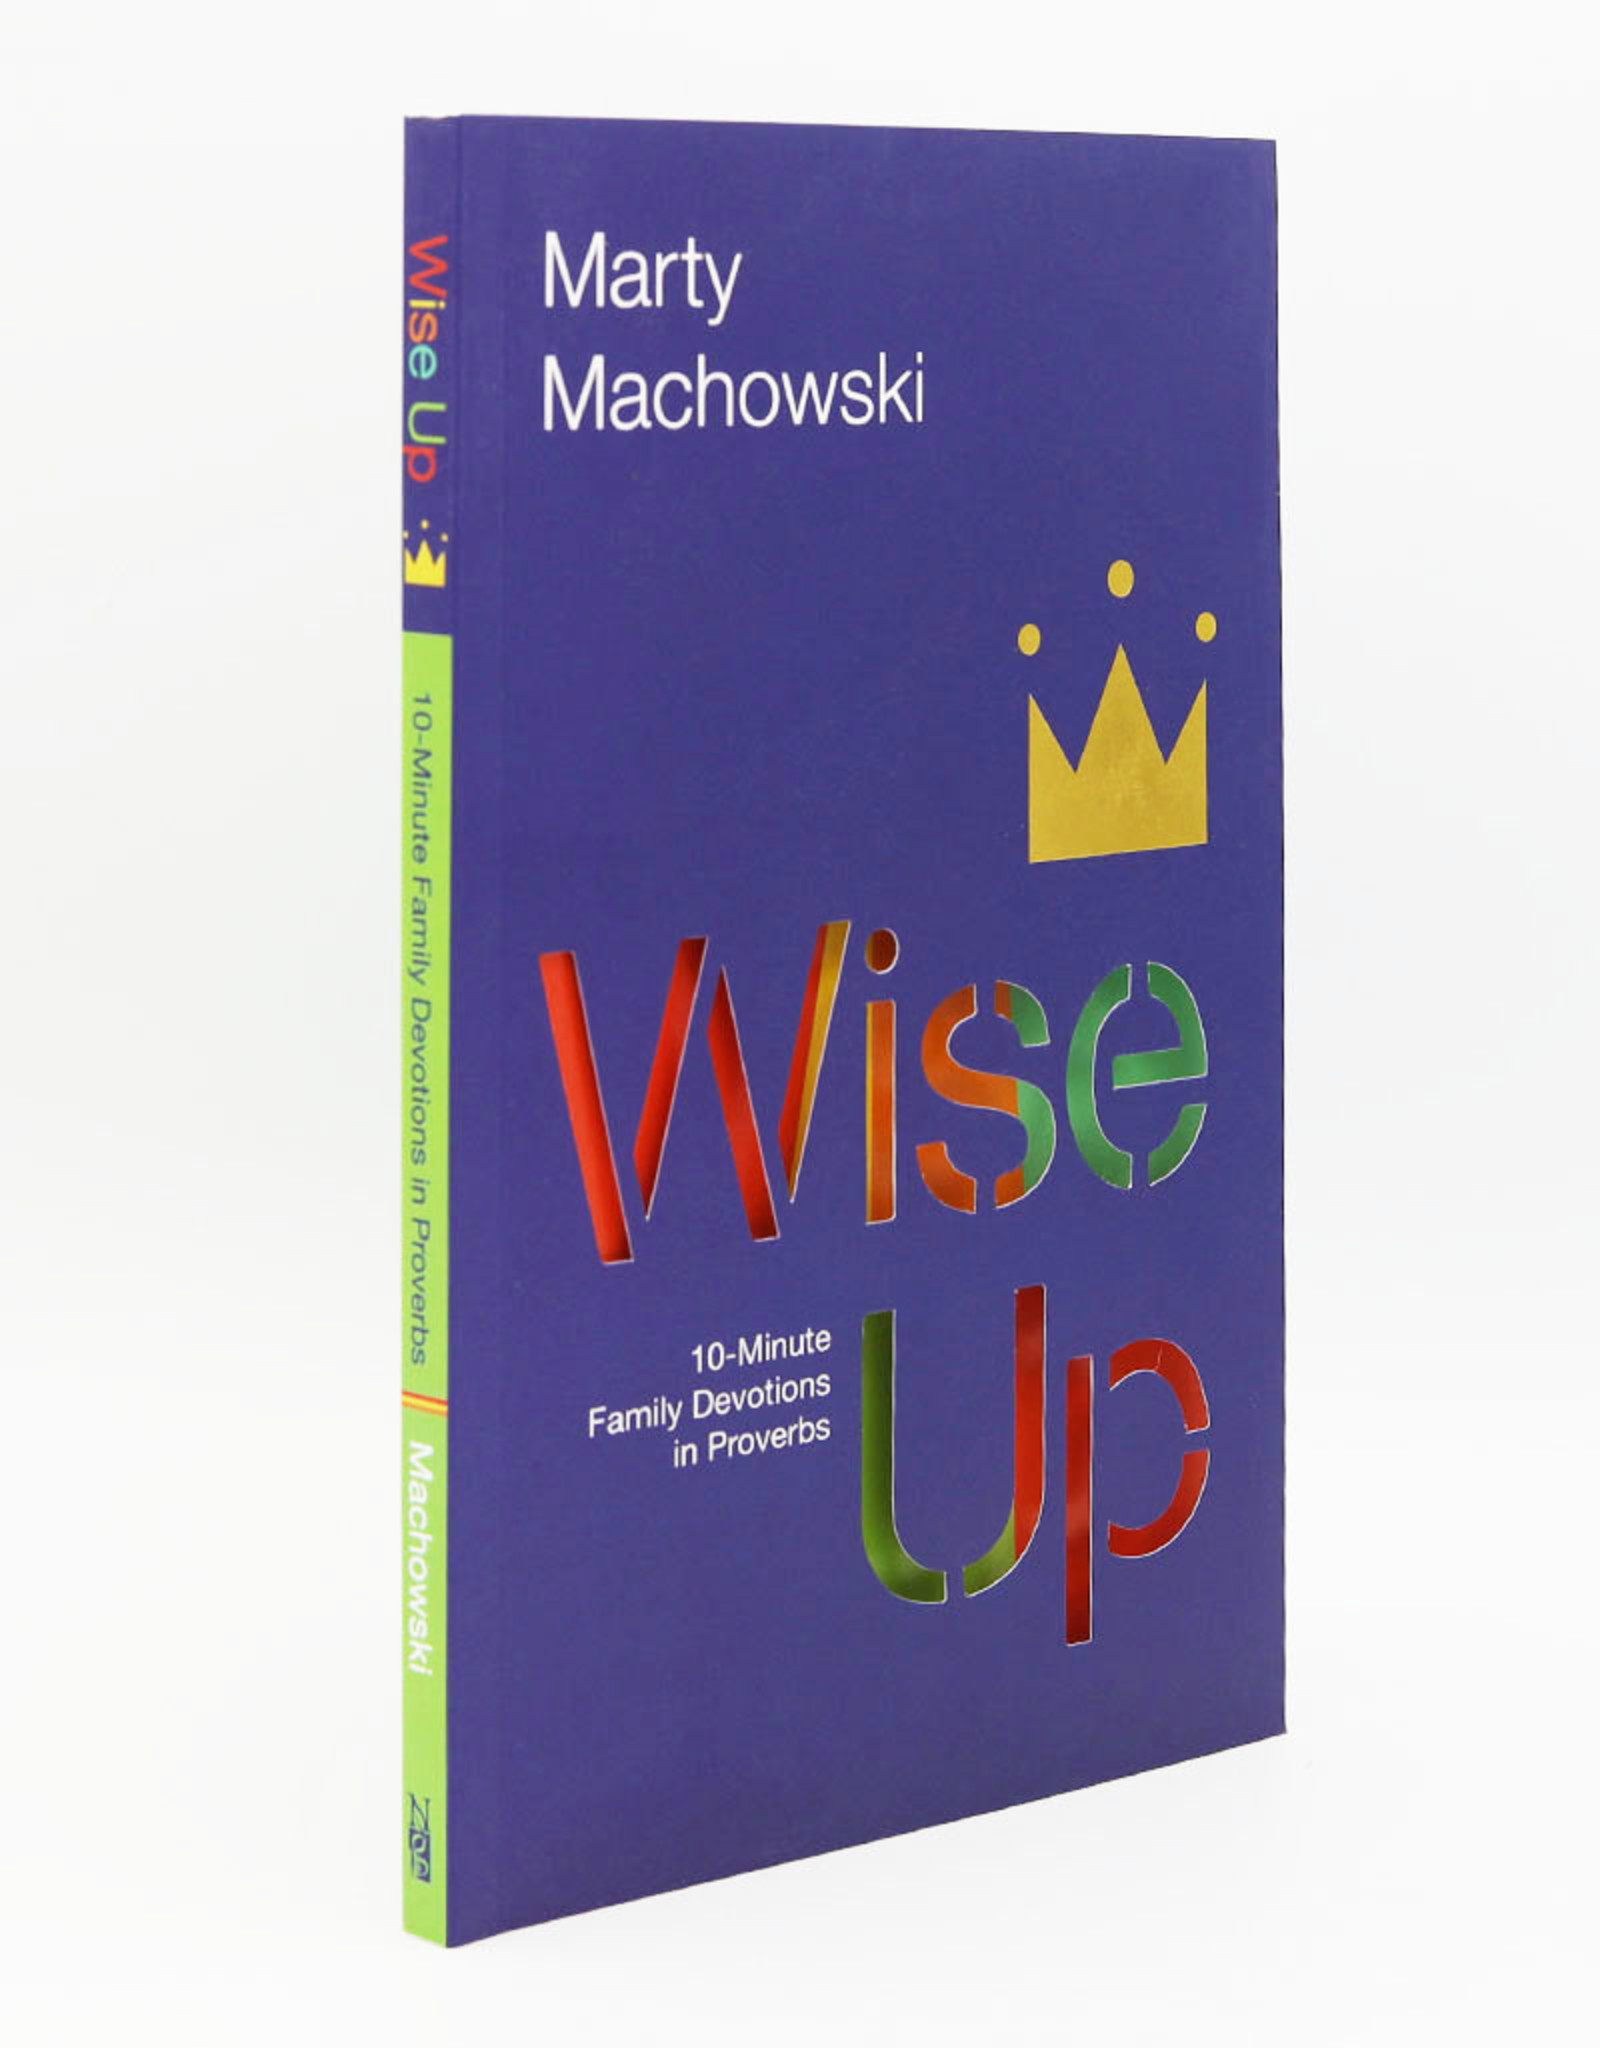 Wise Up, 10 Minute Family Devotions in Proverbs, Mfchowski